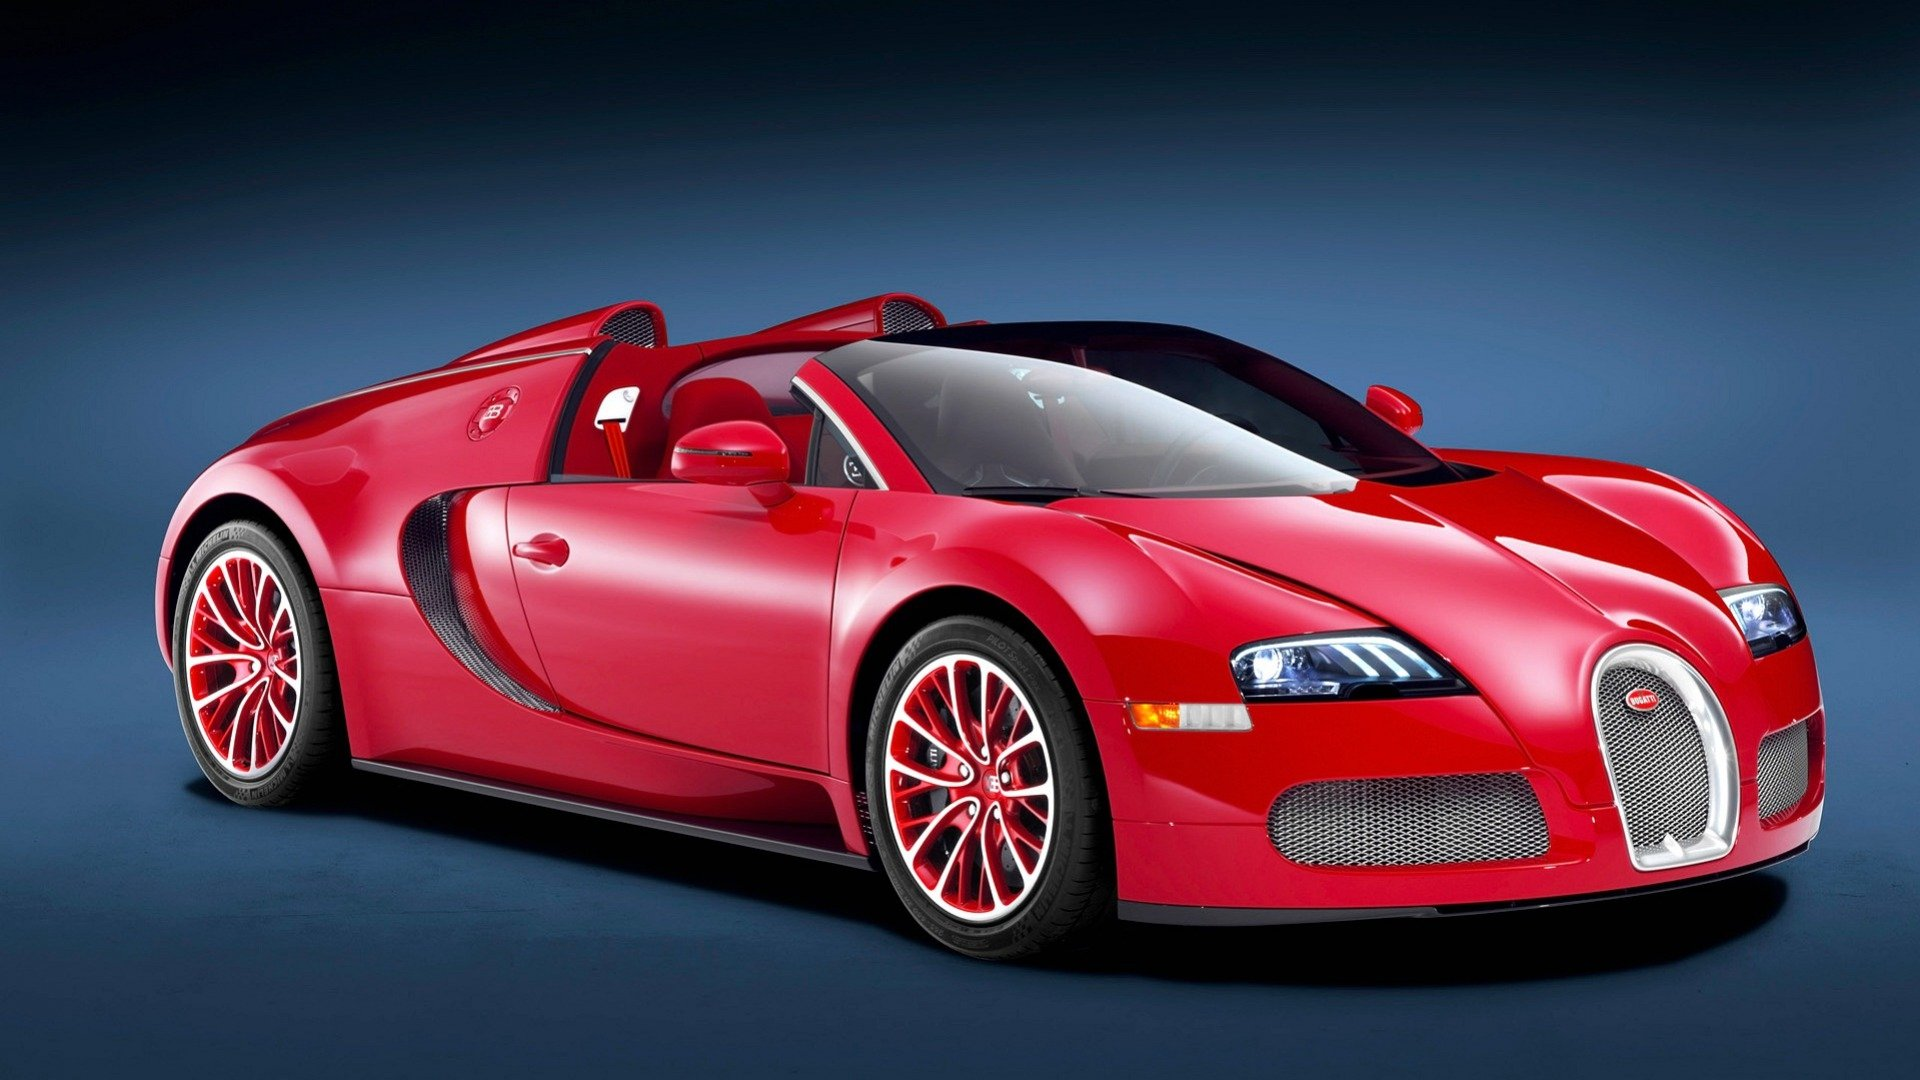 Vehicles - Bugatti Veyron 16.4 Grand Sport  Red Car Sport Car Convertible Wallpaper